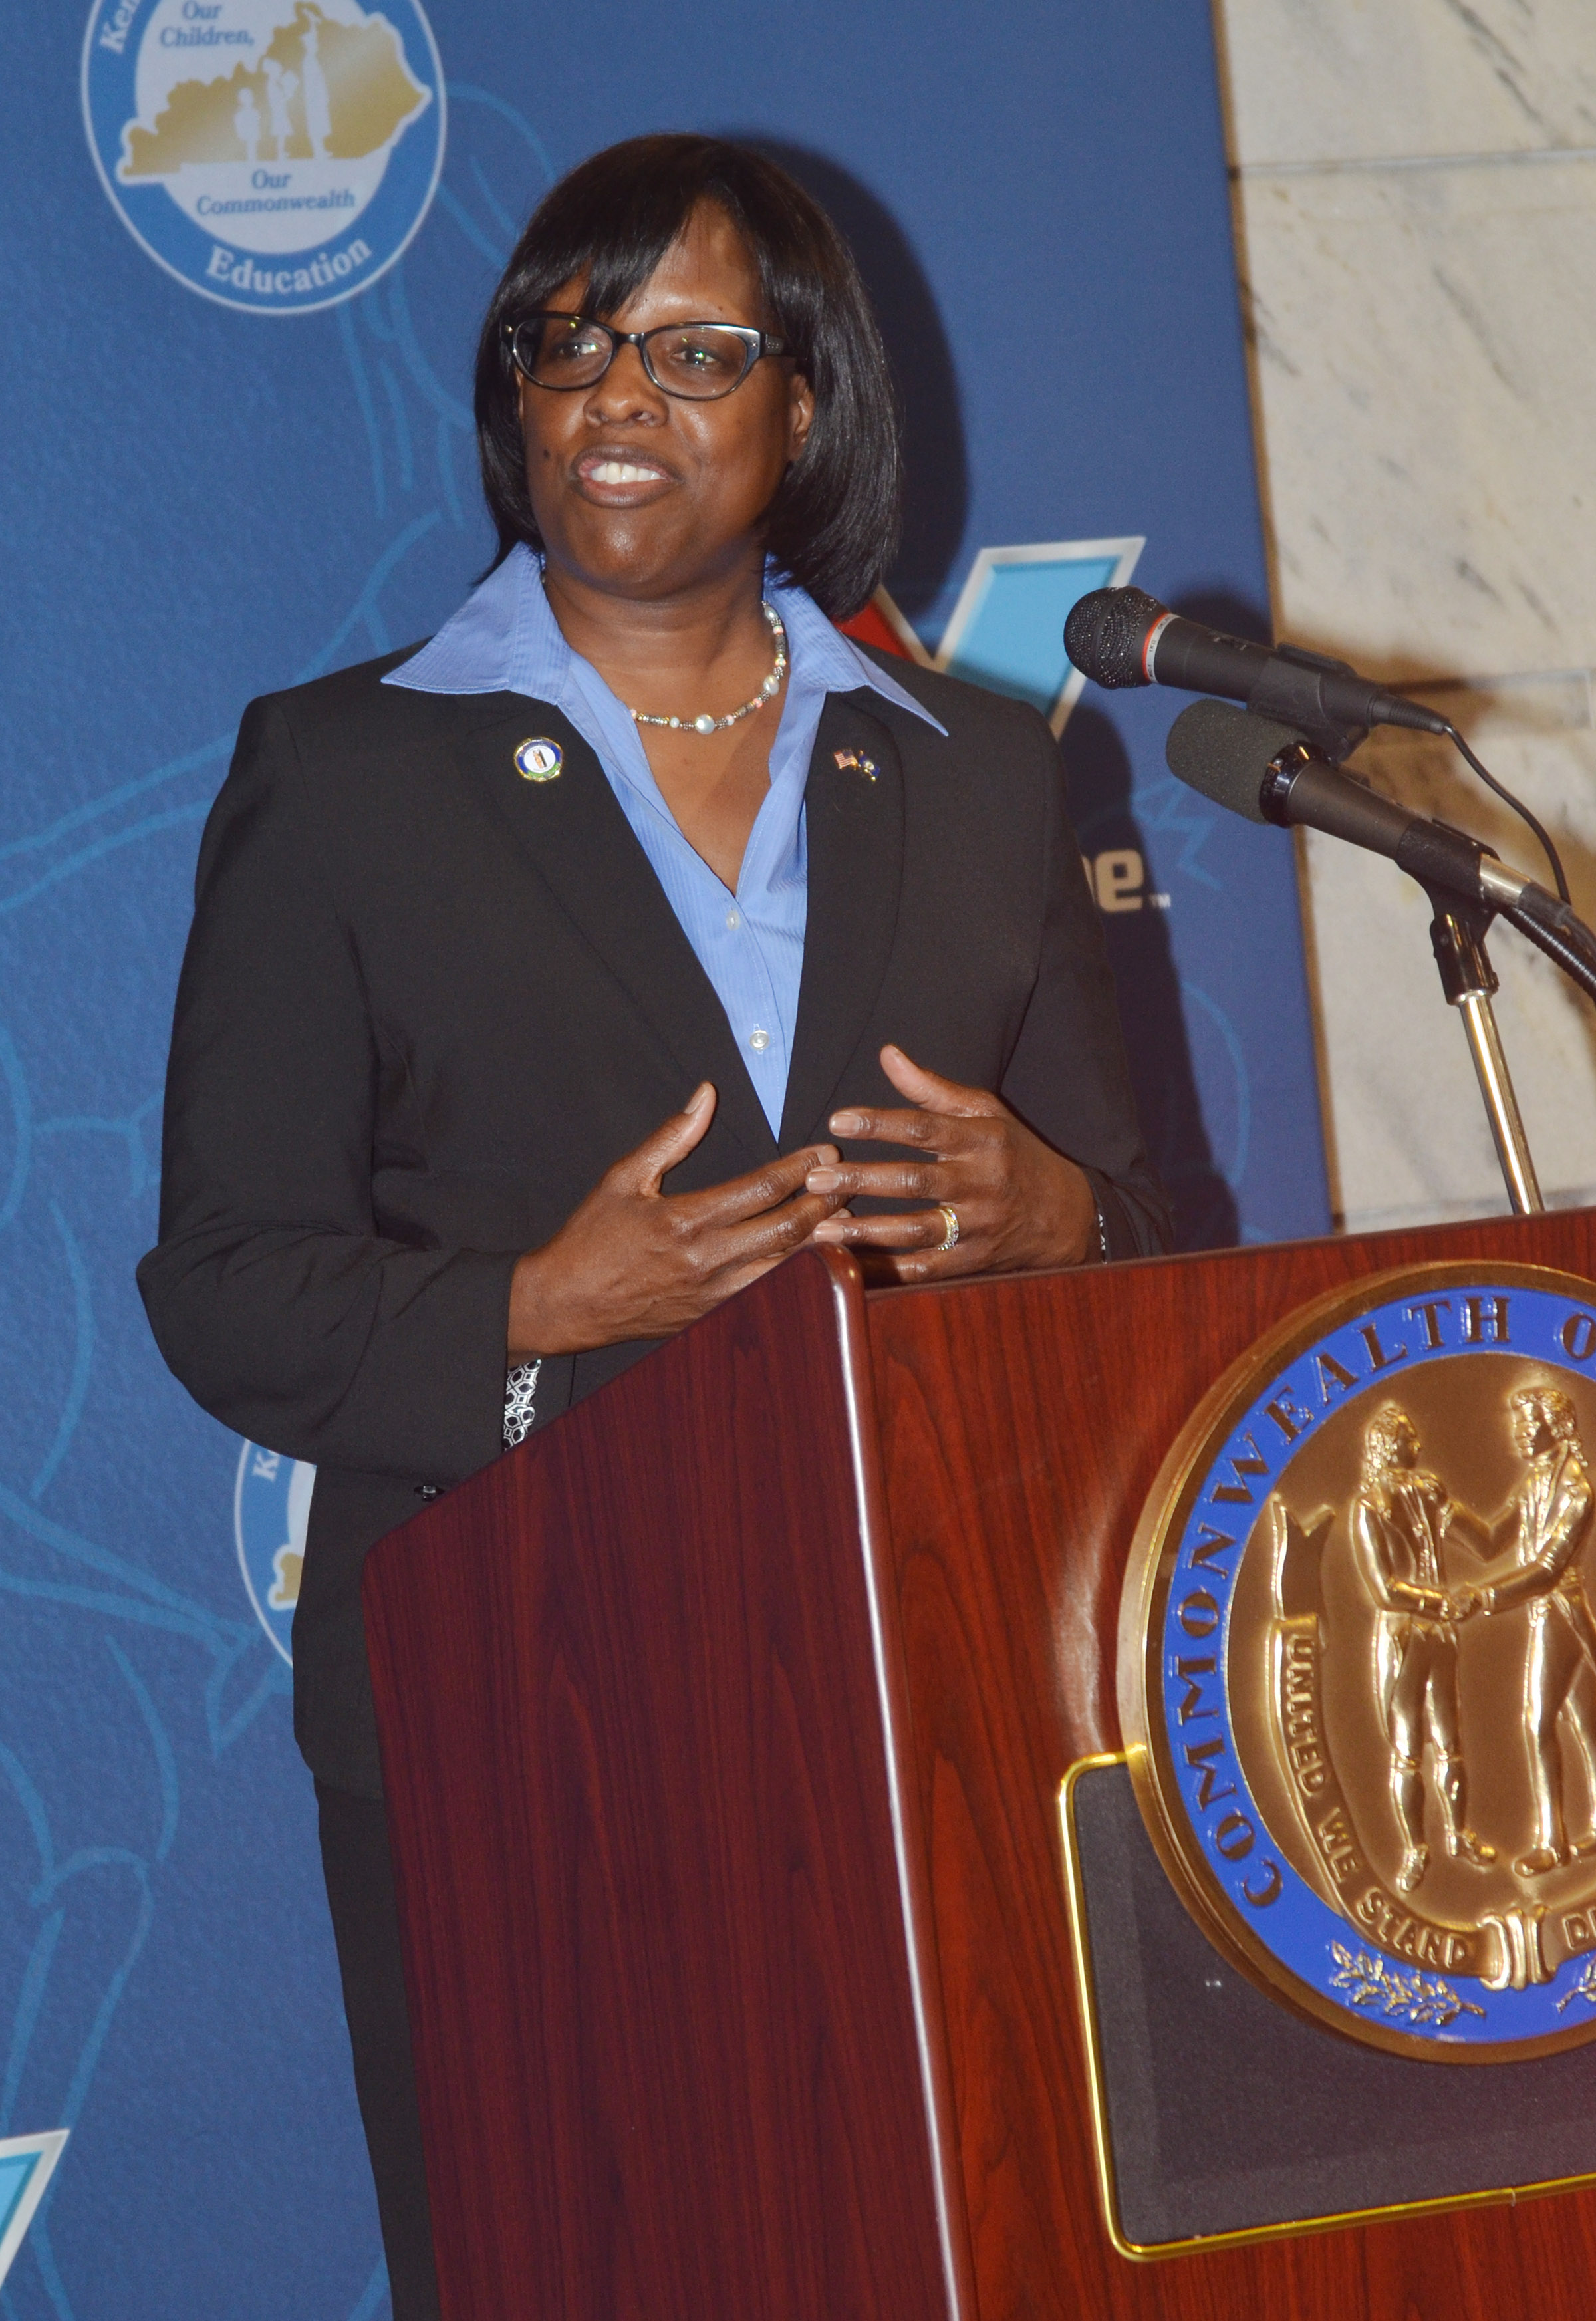 Kentucky Lt. Gov. Jenean Hampton talks about the importance of education.